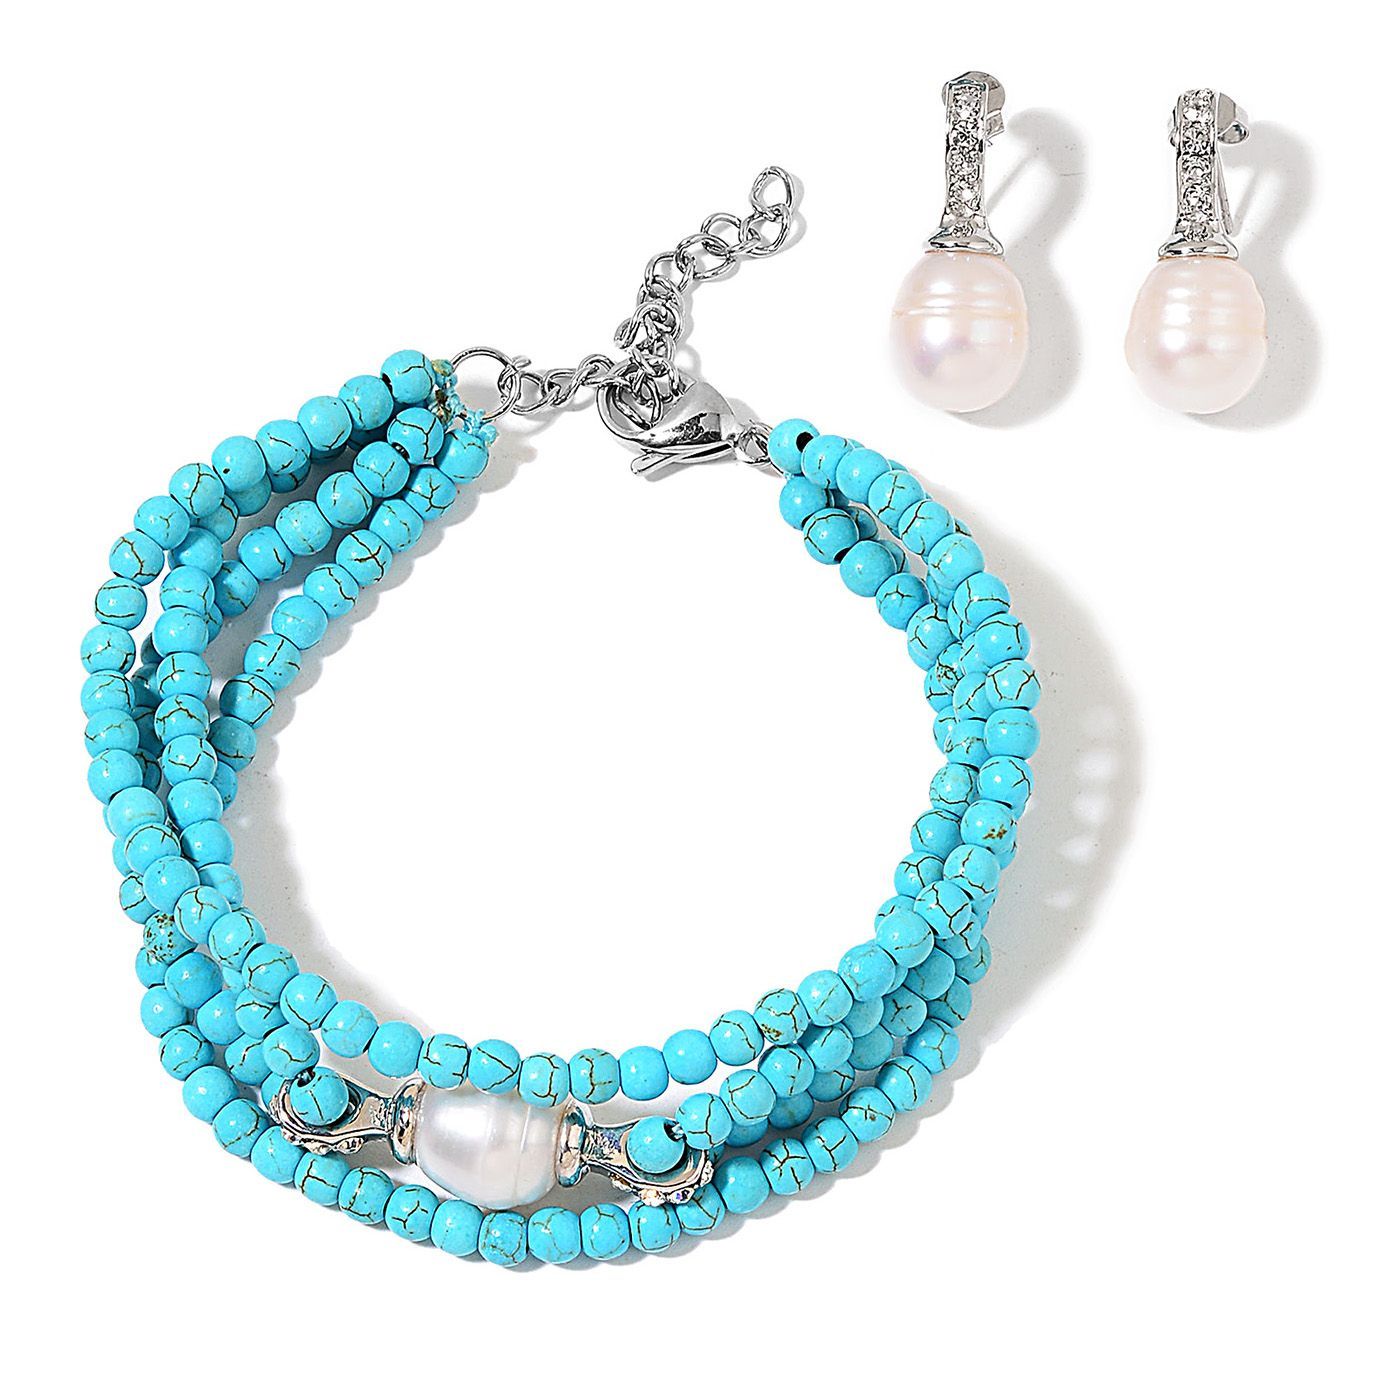 Shop for Howlite Jewelry Sets.